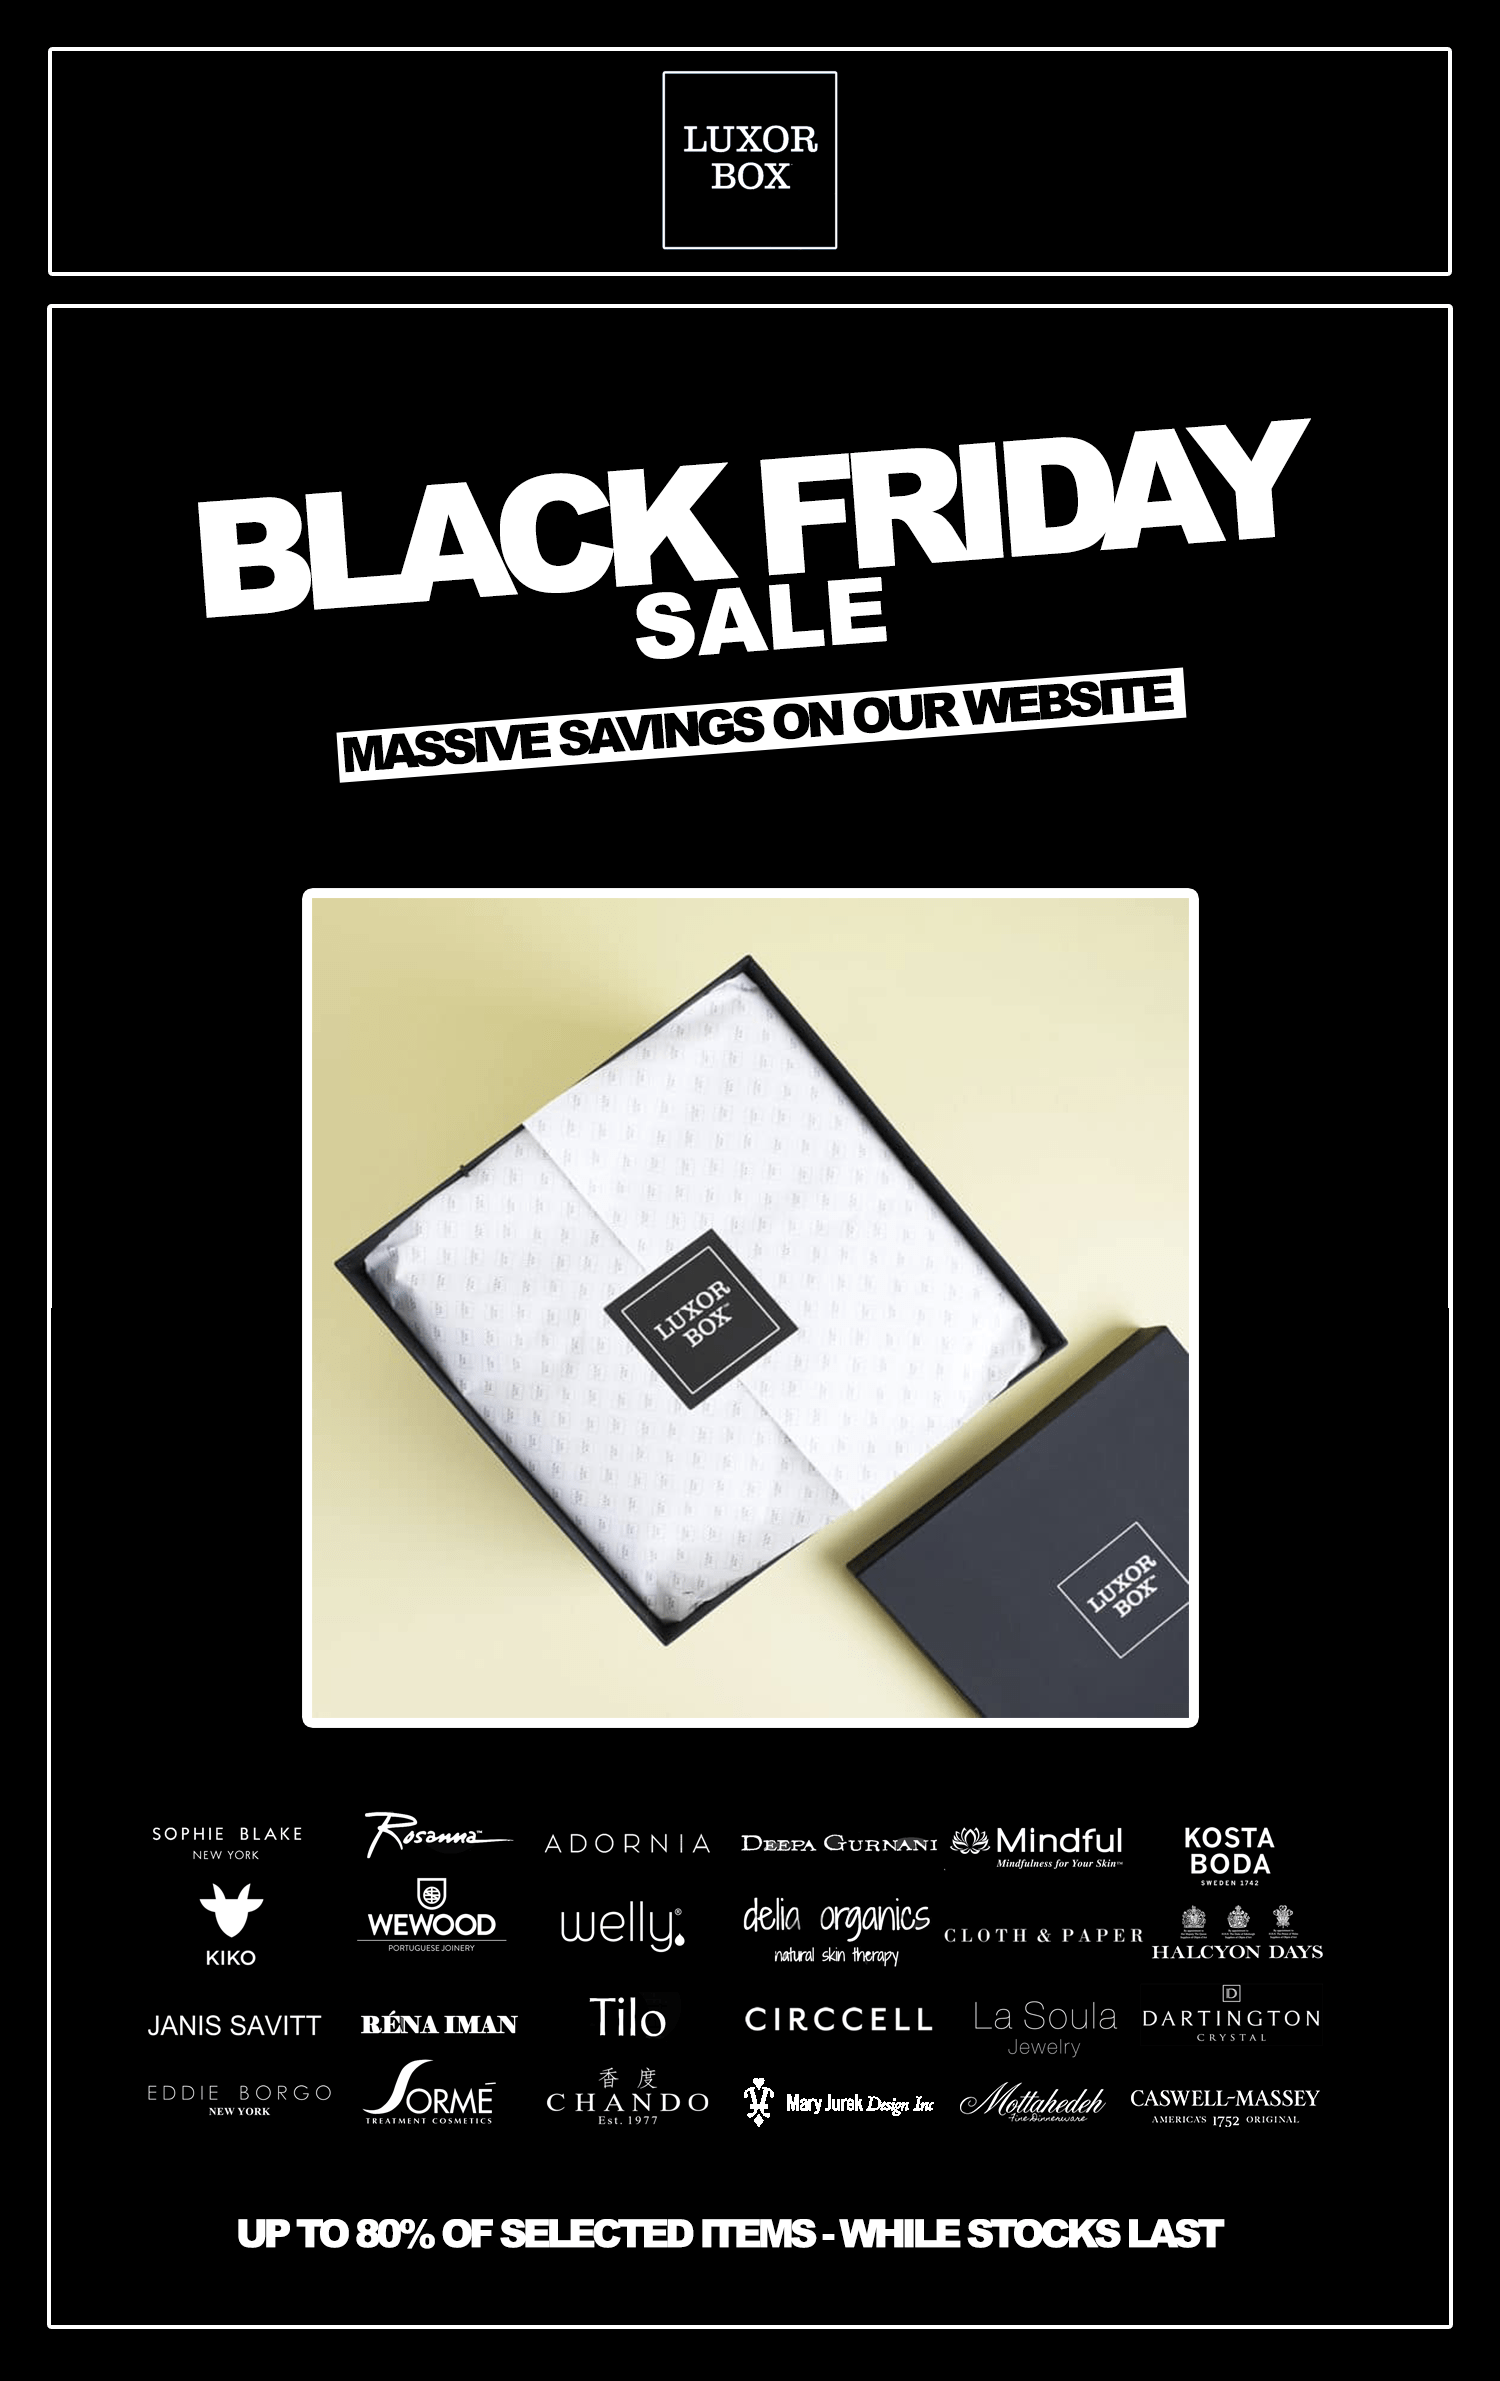 Luxor Box 2018 Black Friday Sale is Here! Up to 80% Off On Selected Items!